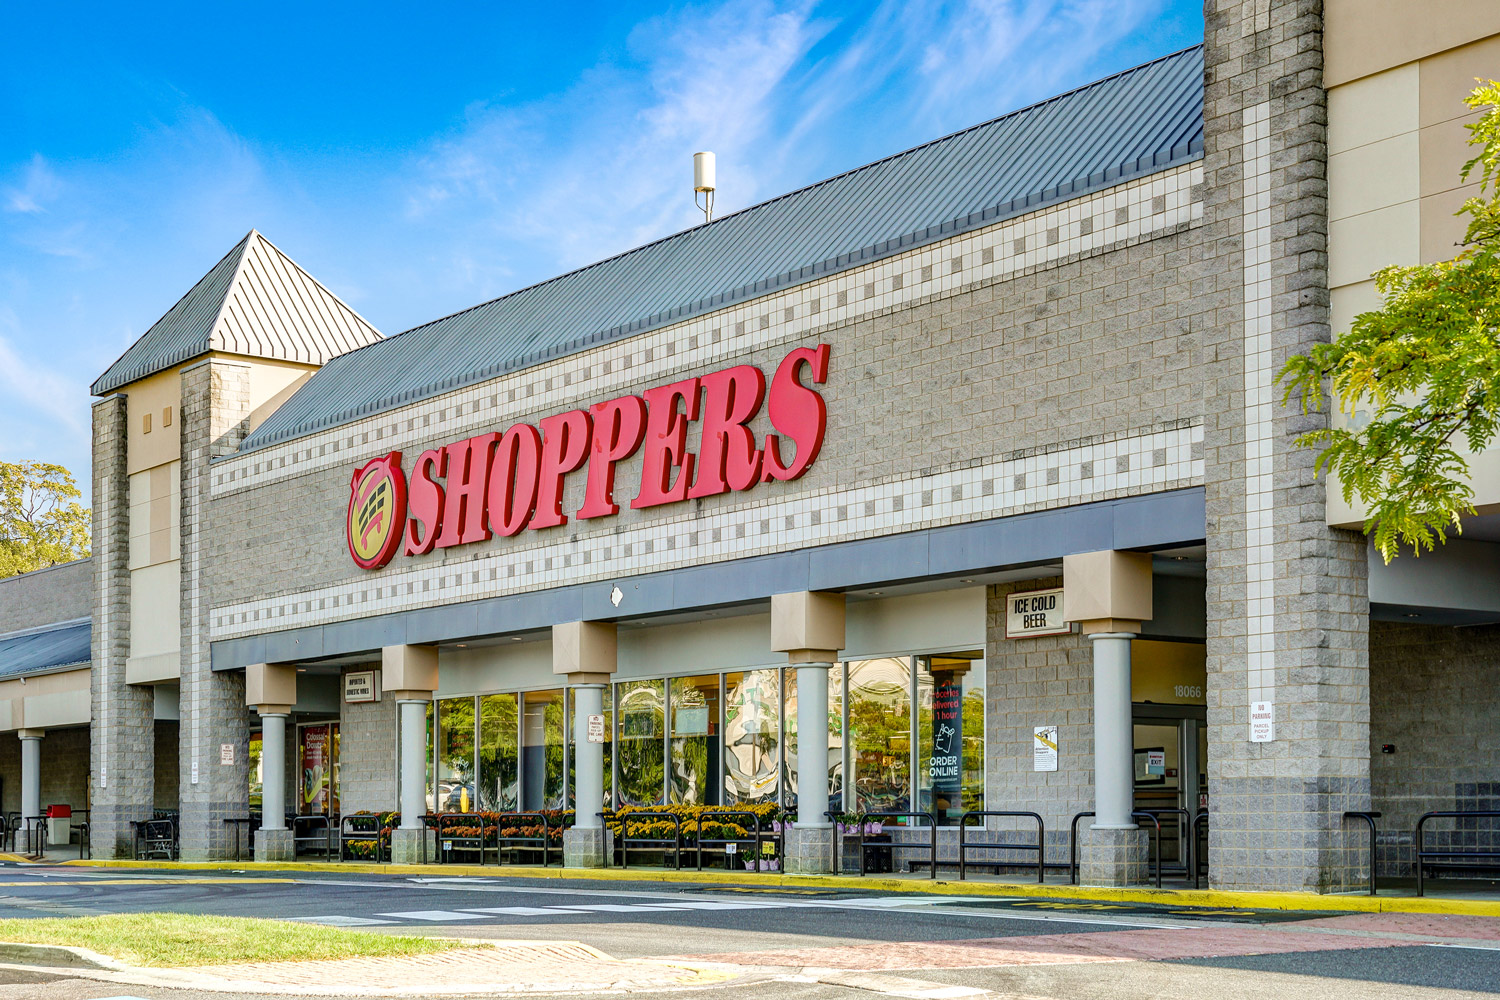 Shoppers grocery store is 5 minutes from Seneca Club Apartments in Germantown, MD